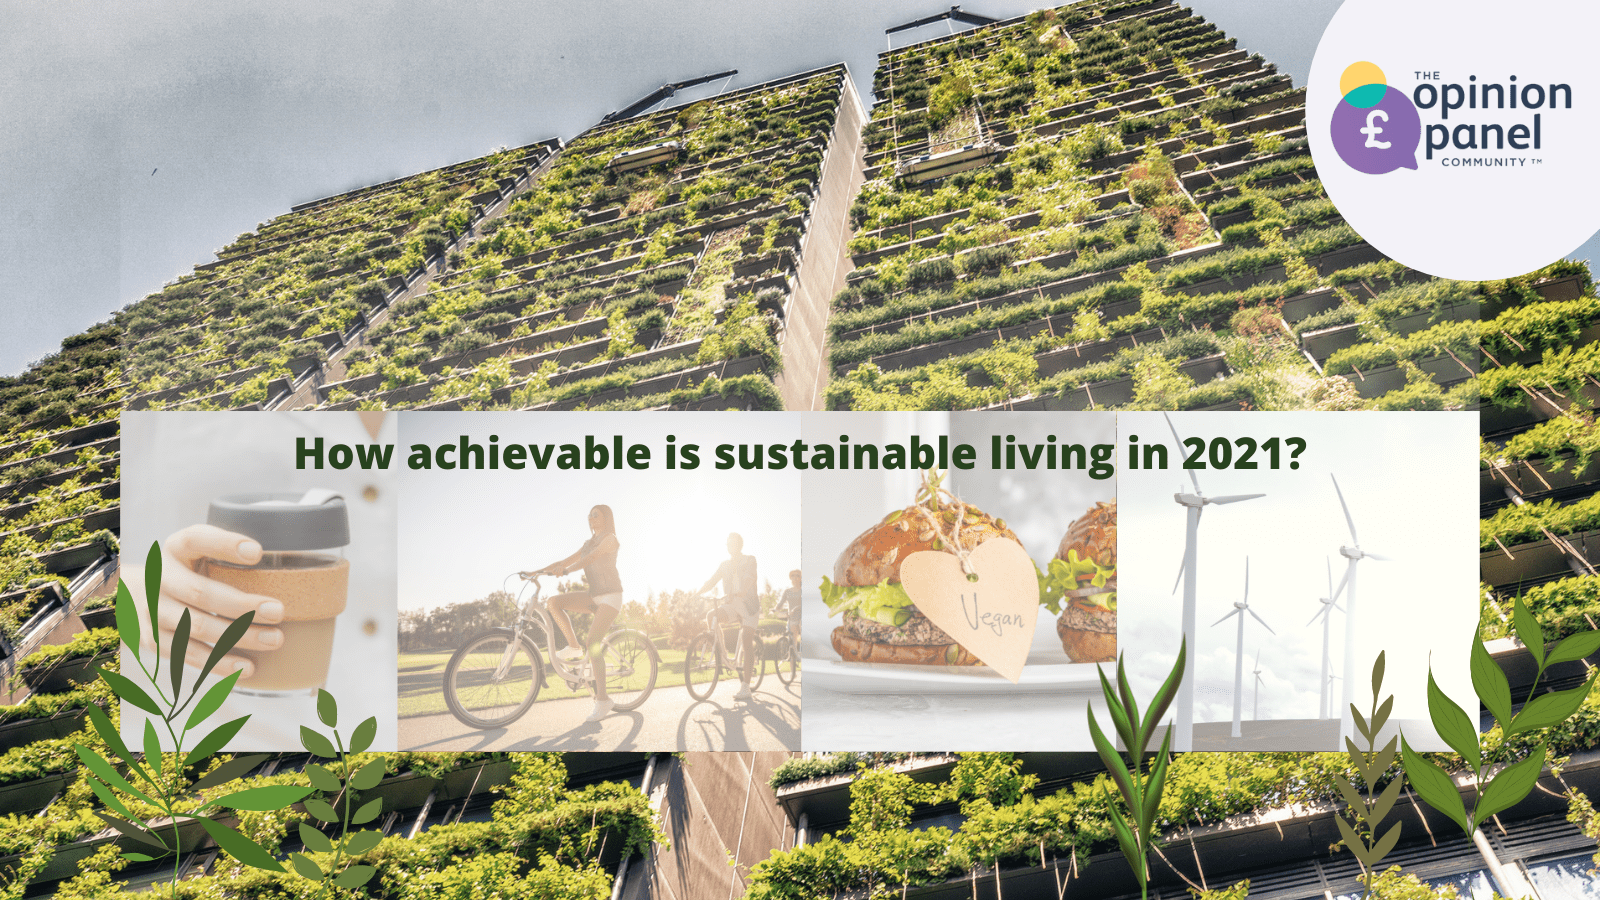 Sustainable living 2021 title image